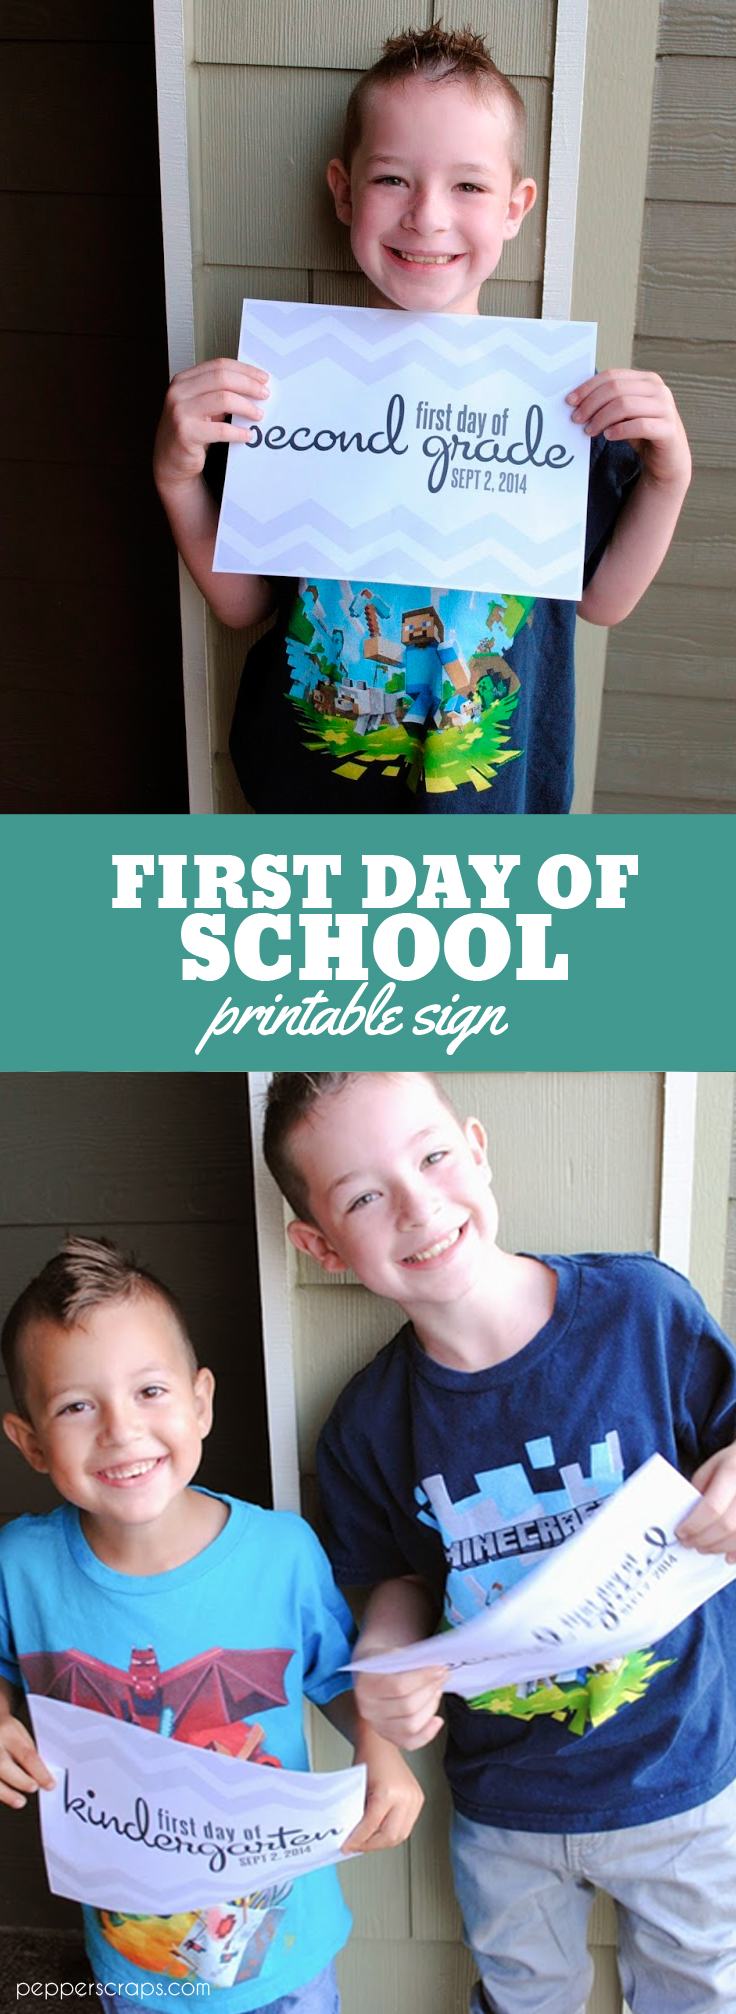 Free First Day of School Printable Signs by Pepper Scraps